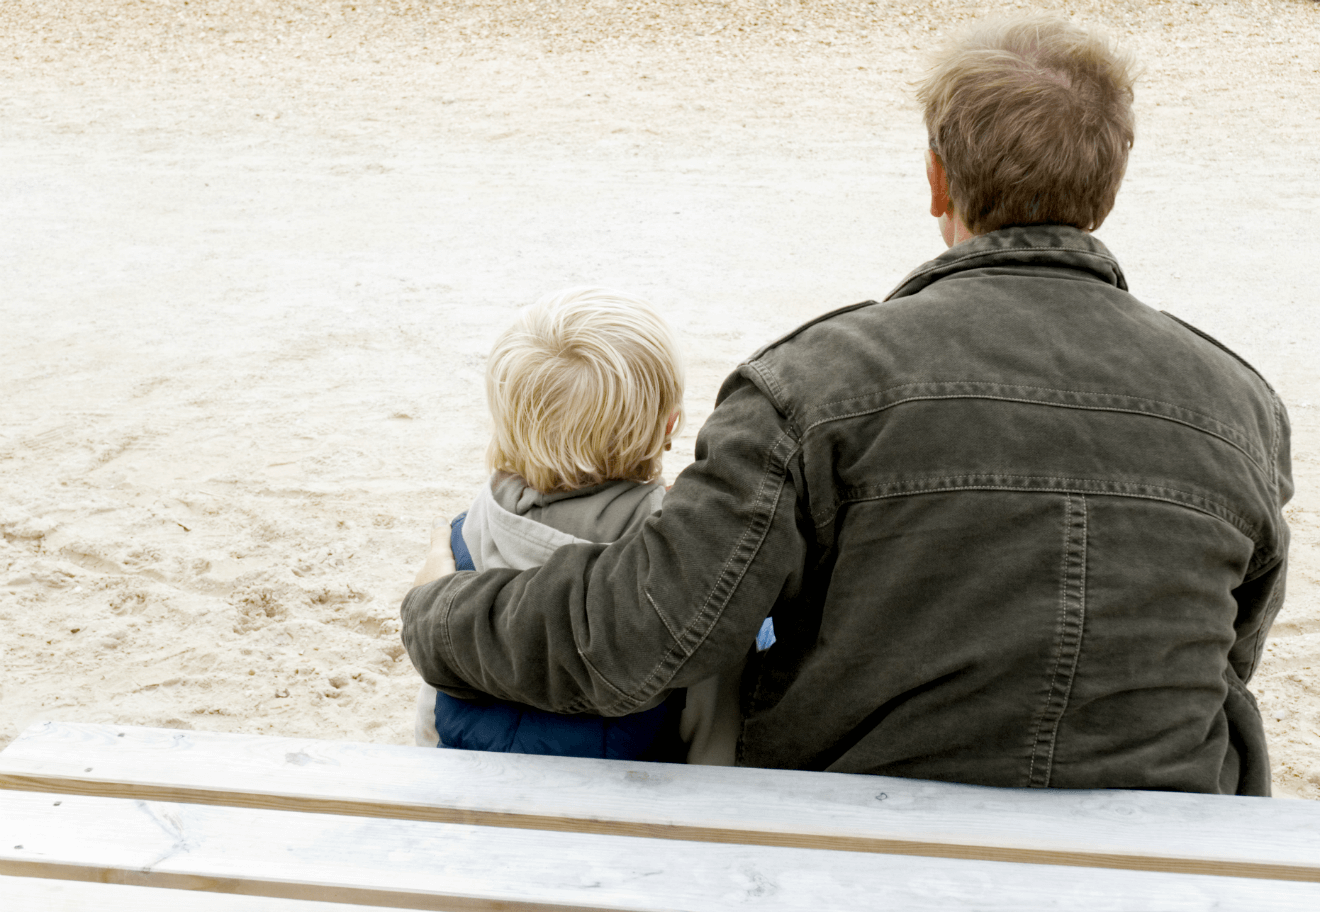 divorced dad with son on park bench